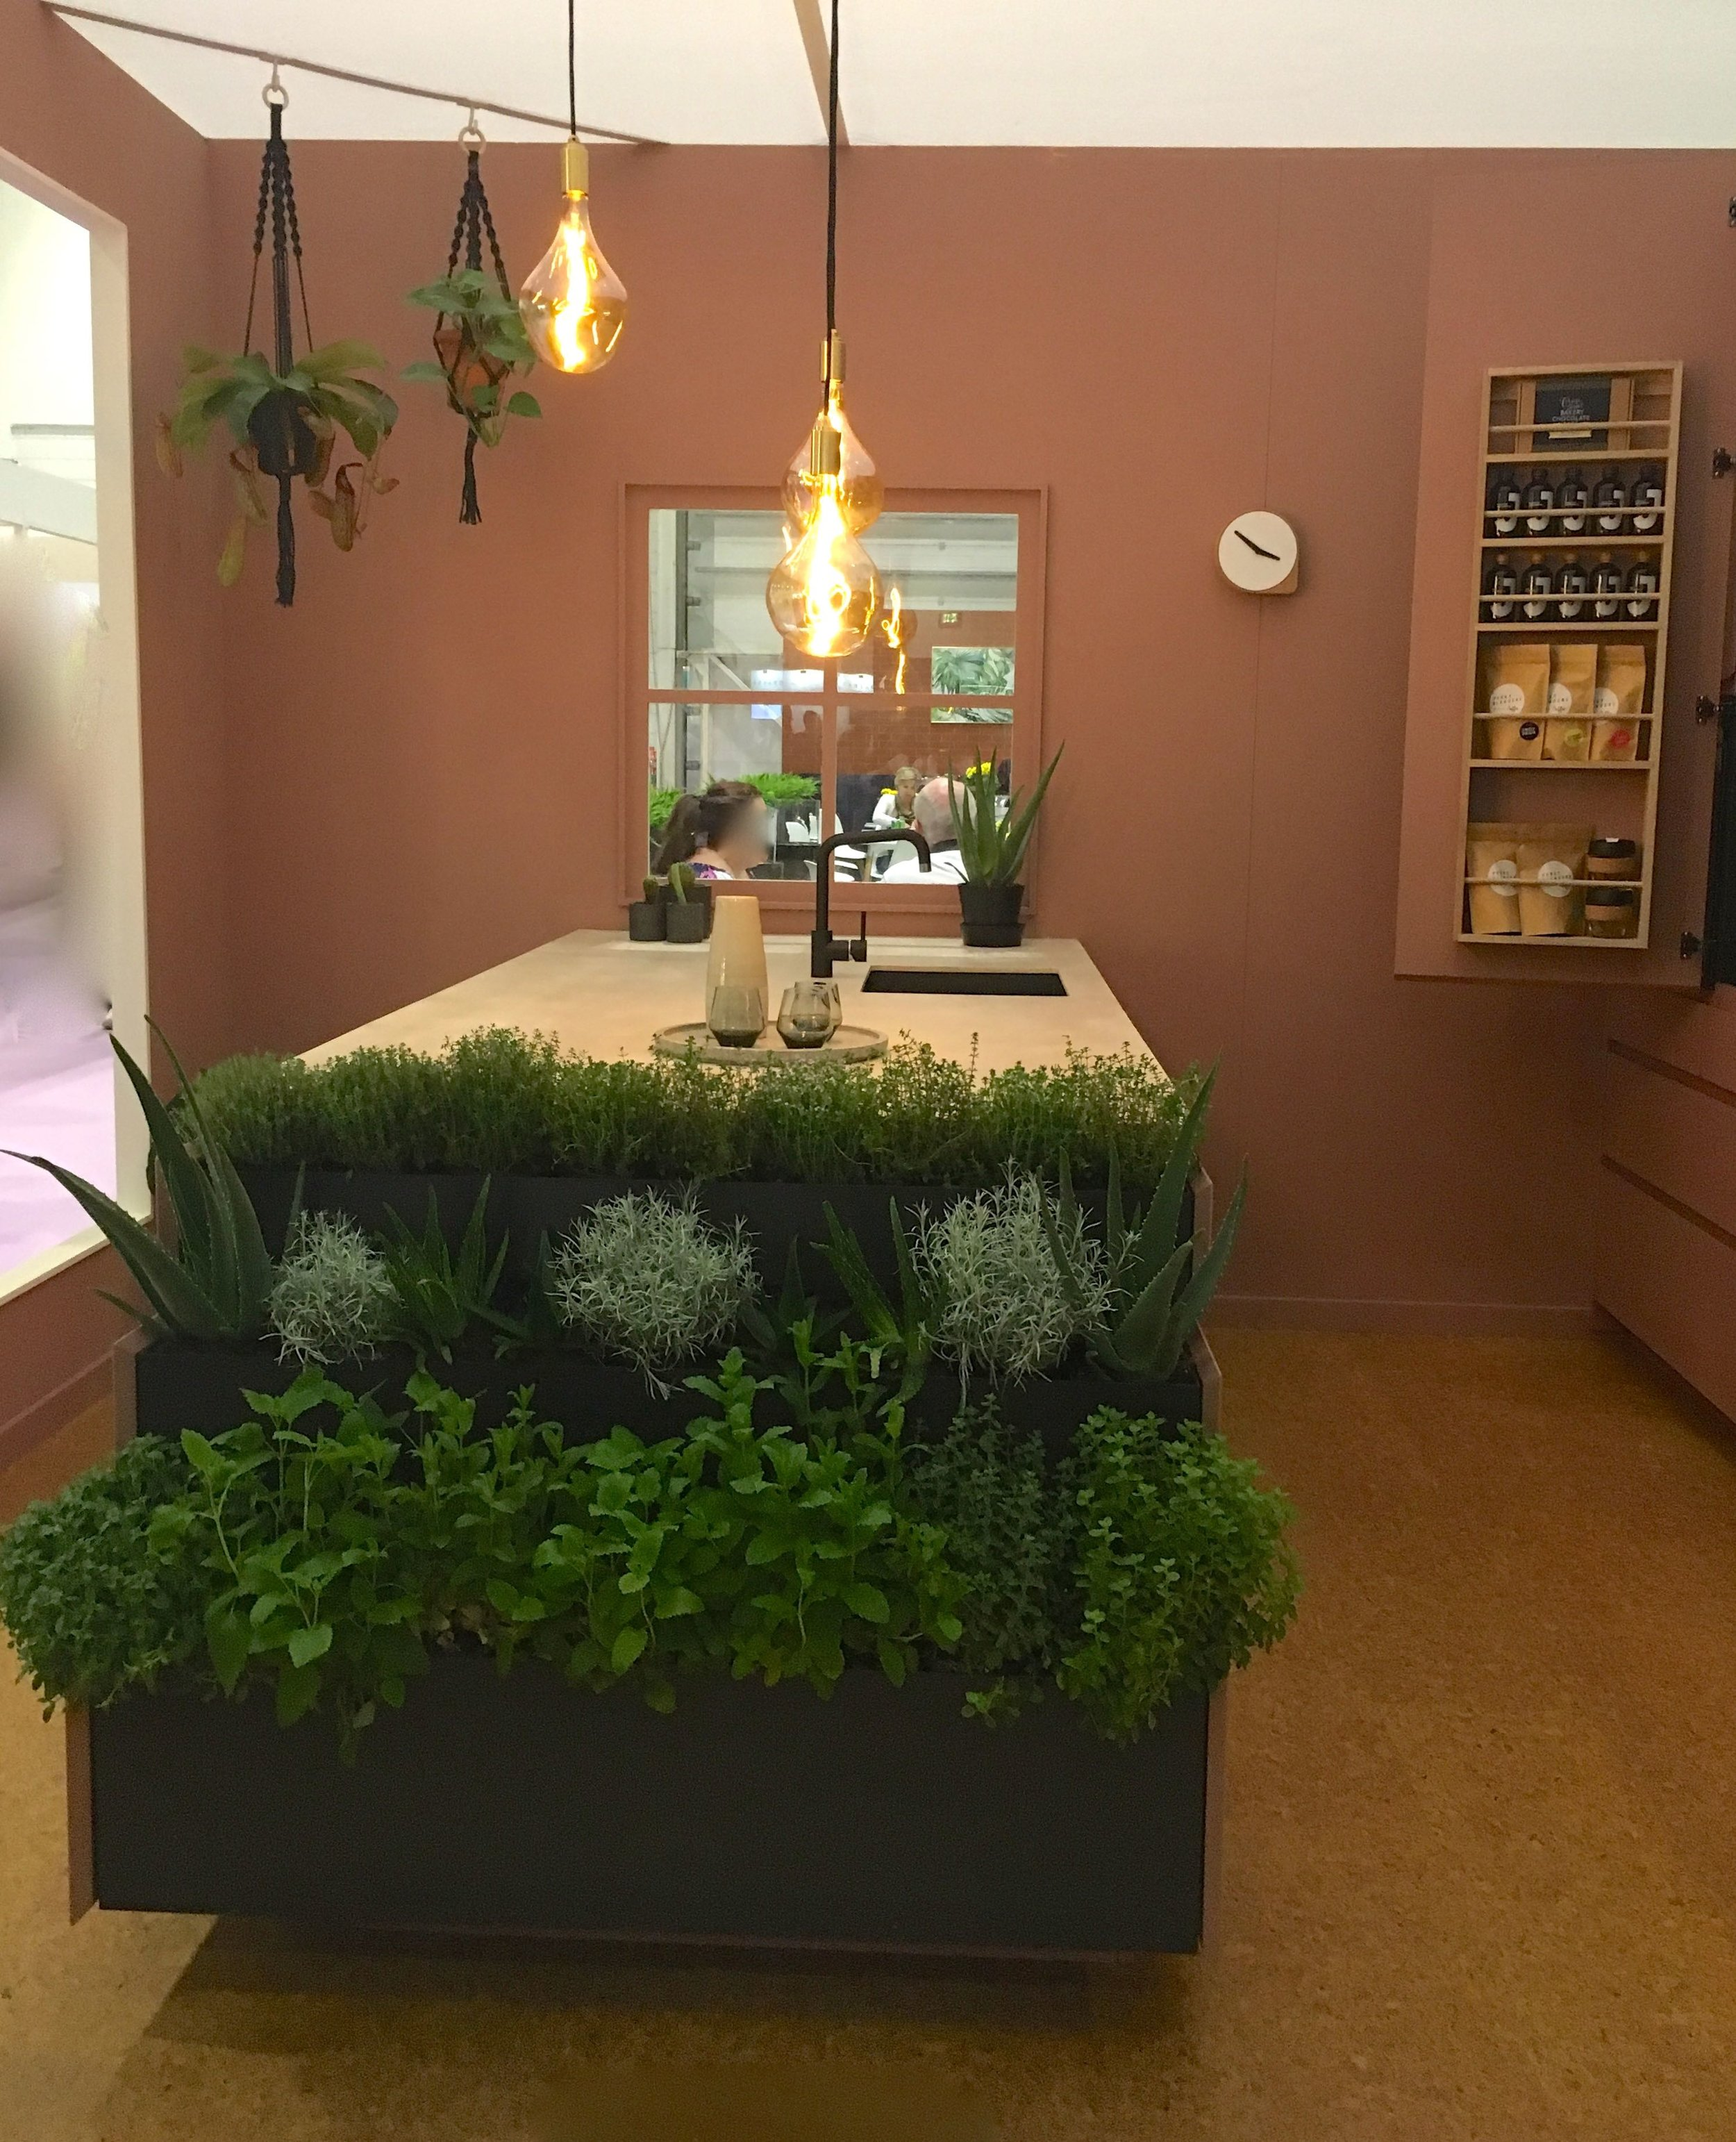 Herbs at hand in this roomset at Grand Designs Live